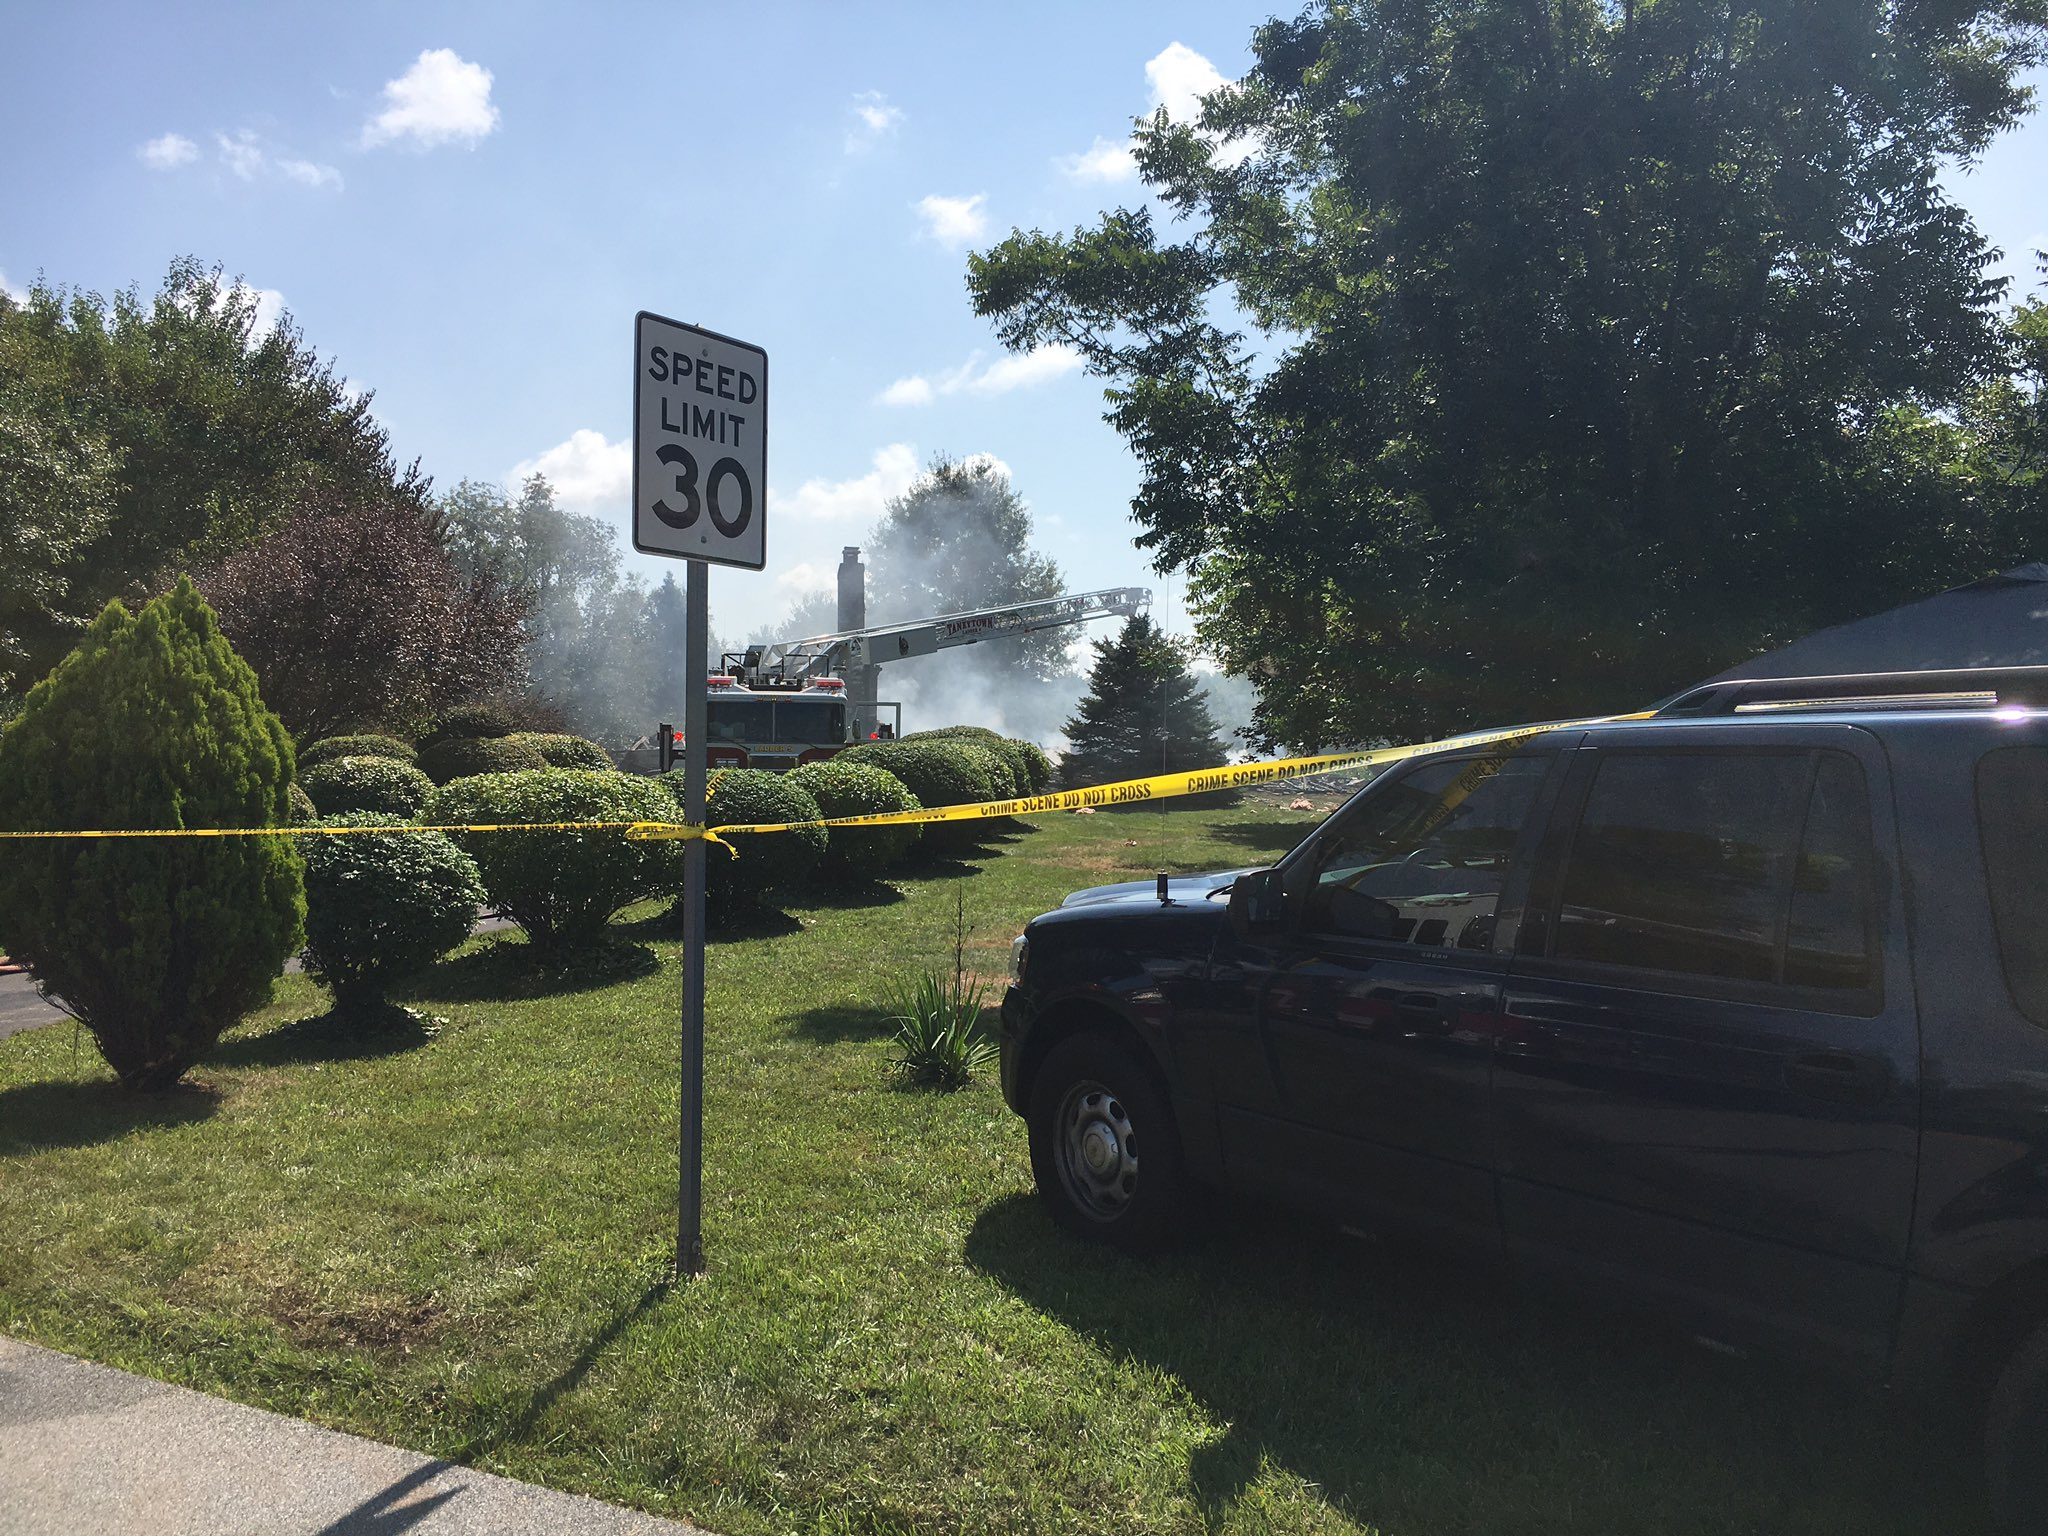 Reported explosion, fire at Taneytown home (Photo: @ShelleyOFox45)